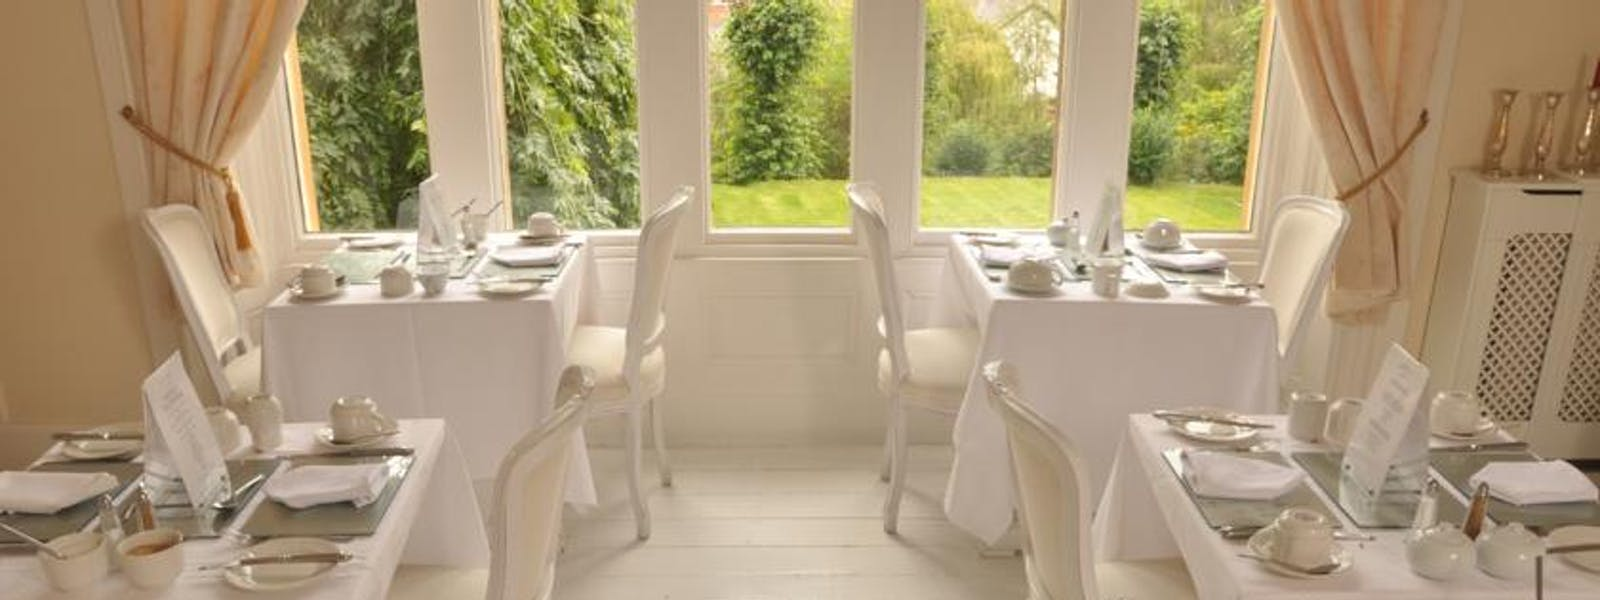 Breakfast Room overlooking garden